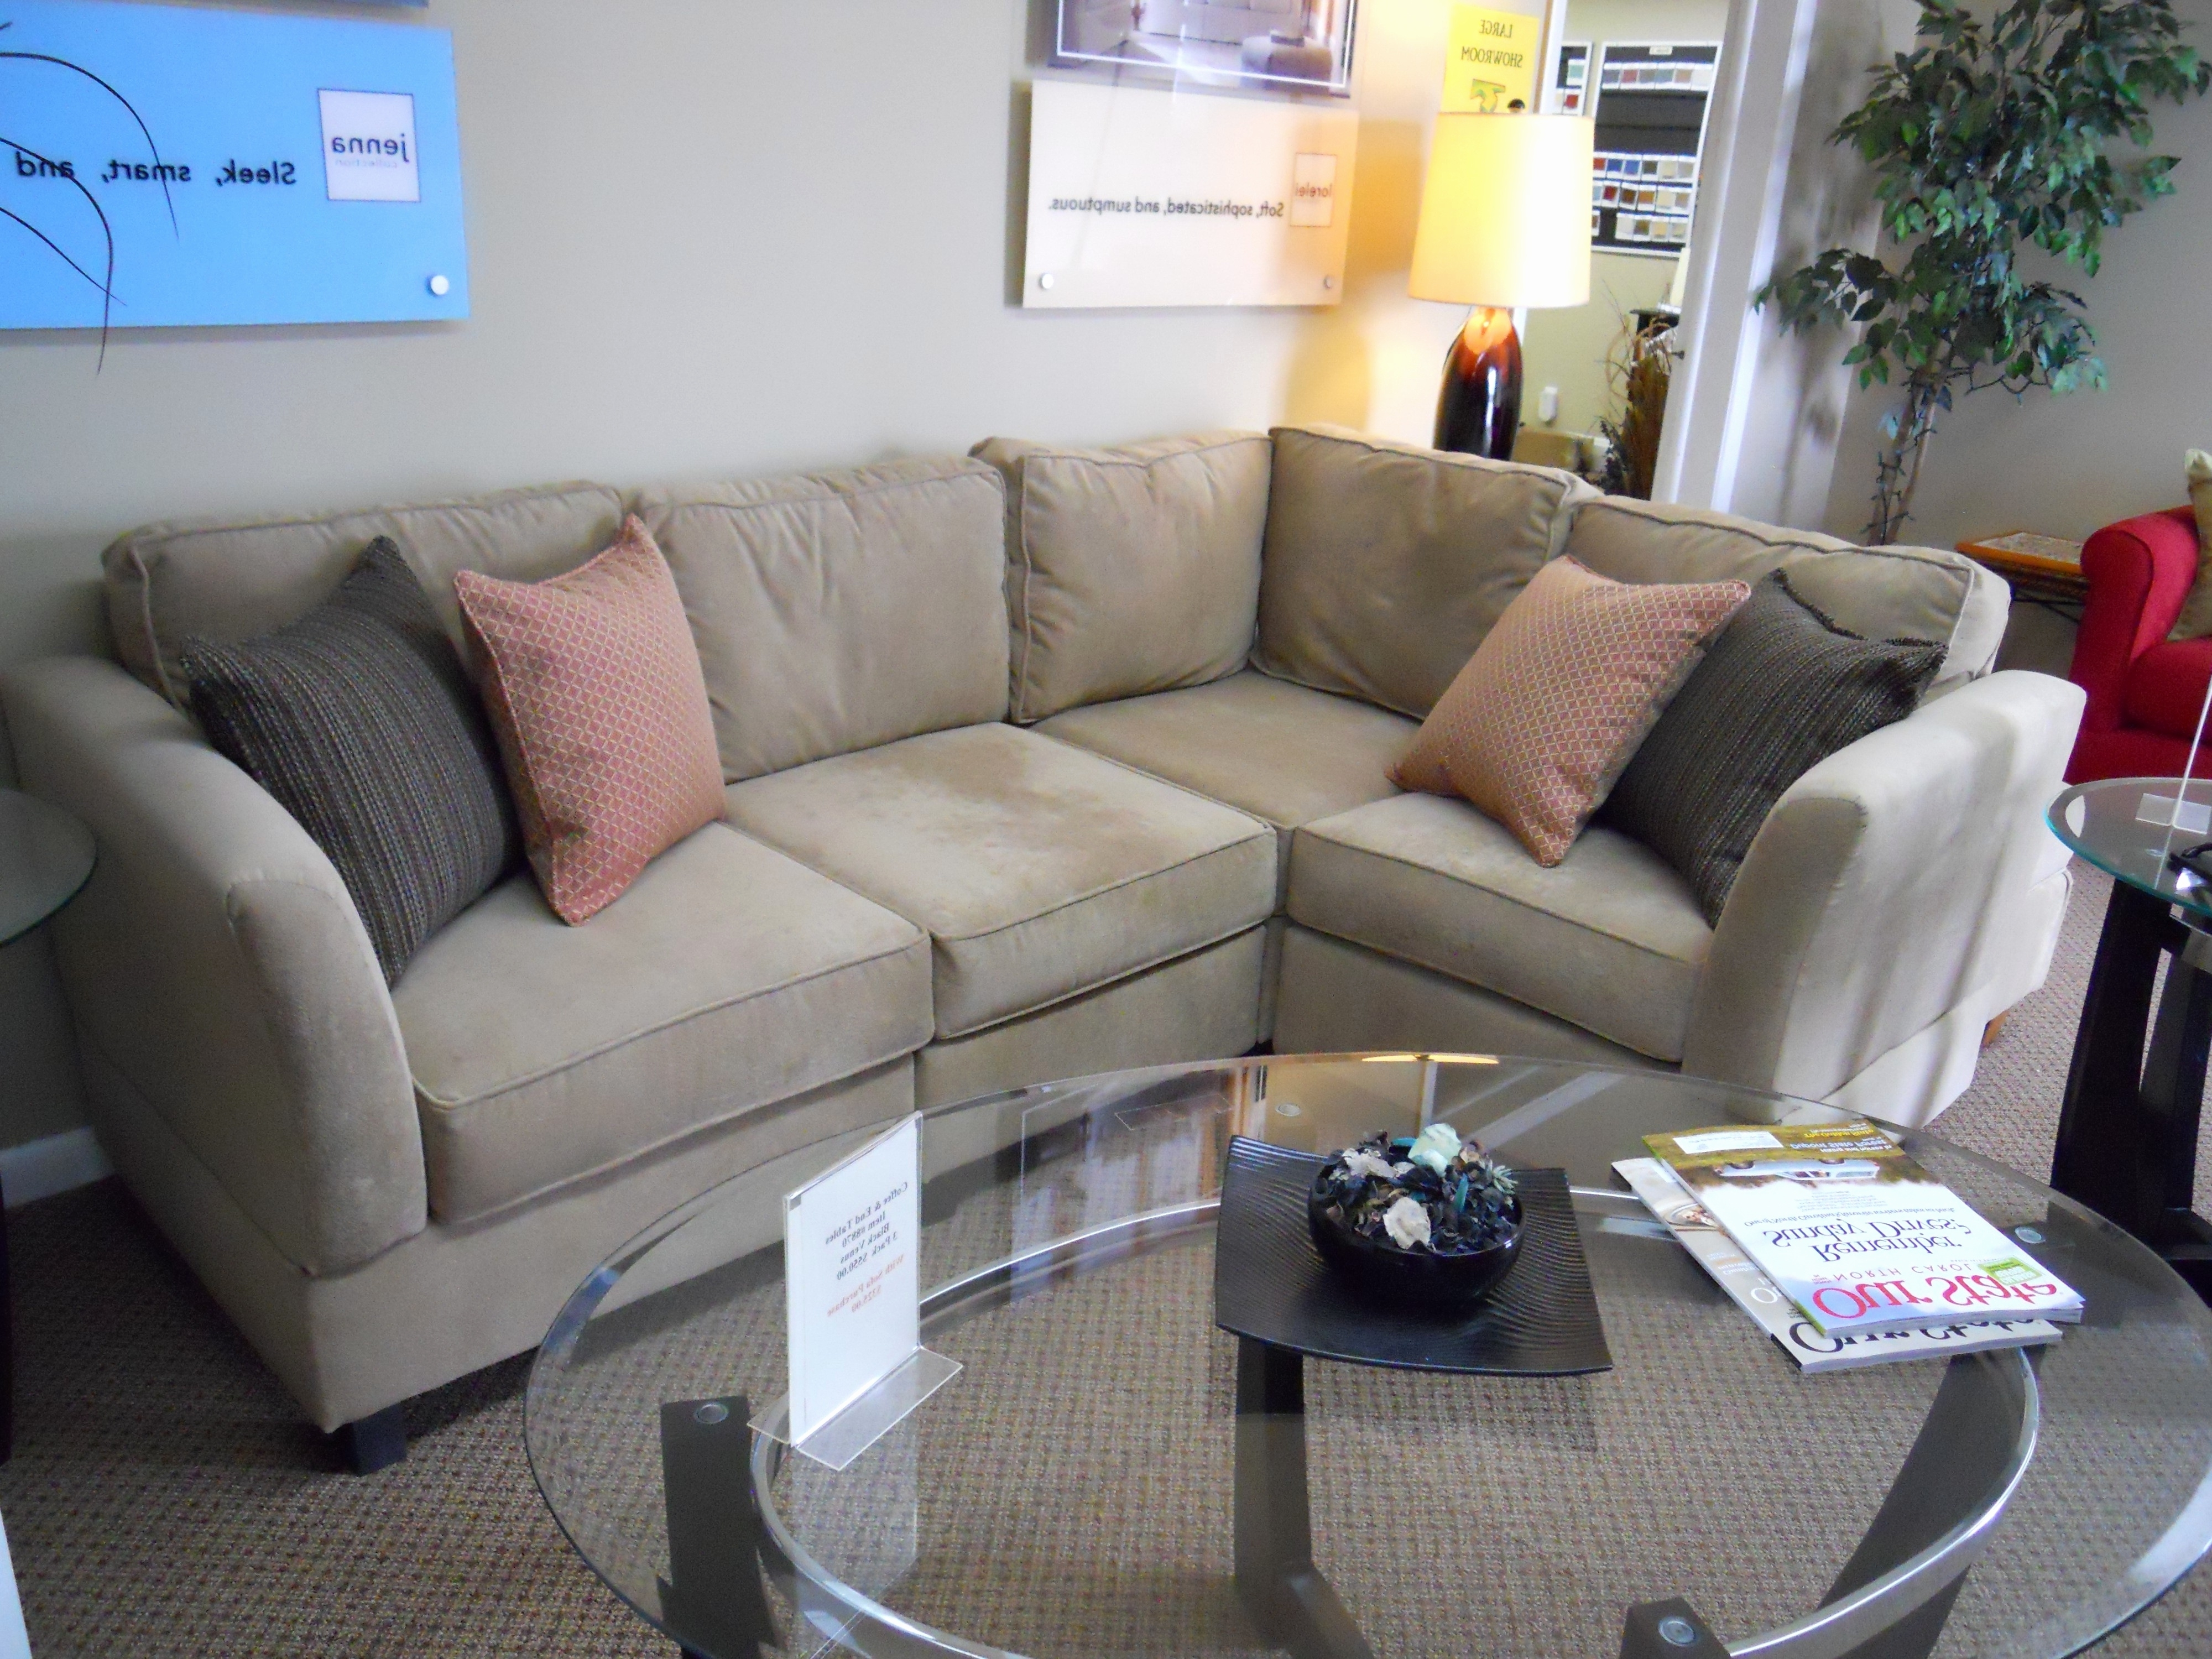 Kmart Sectional Sofas Pertaining To Current New Sofa Bed Under 300 2018 – Couches Ideas (Gallery 5 of 20)